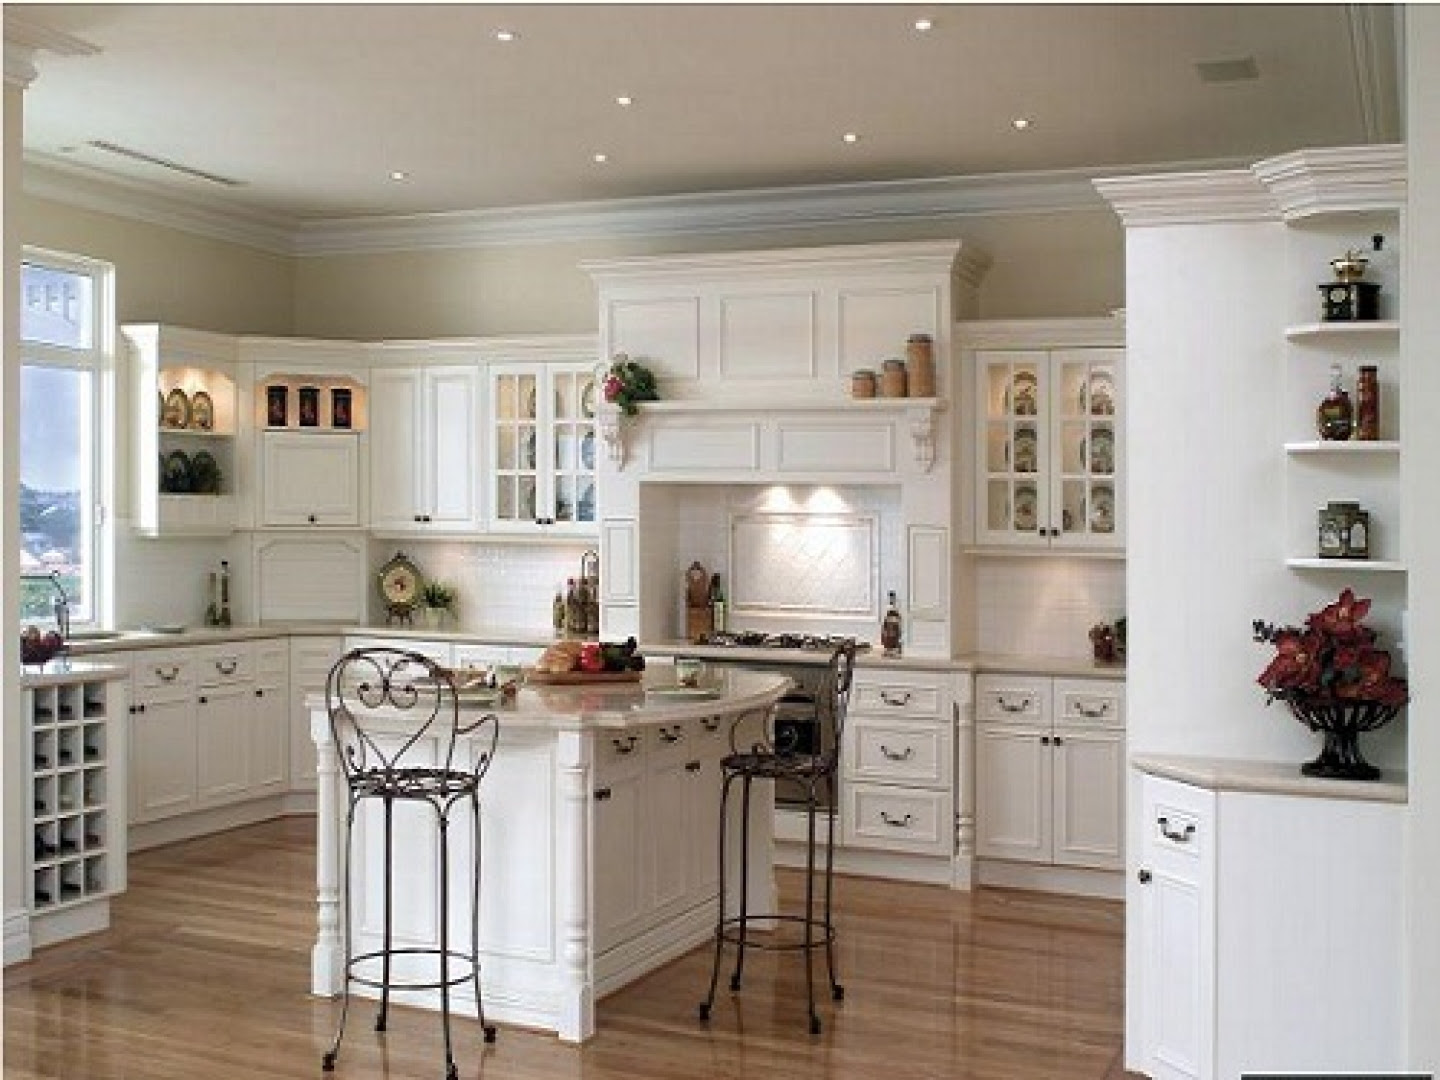 The Best Material For Kitchen Flooring For Dark Cabinets ...